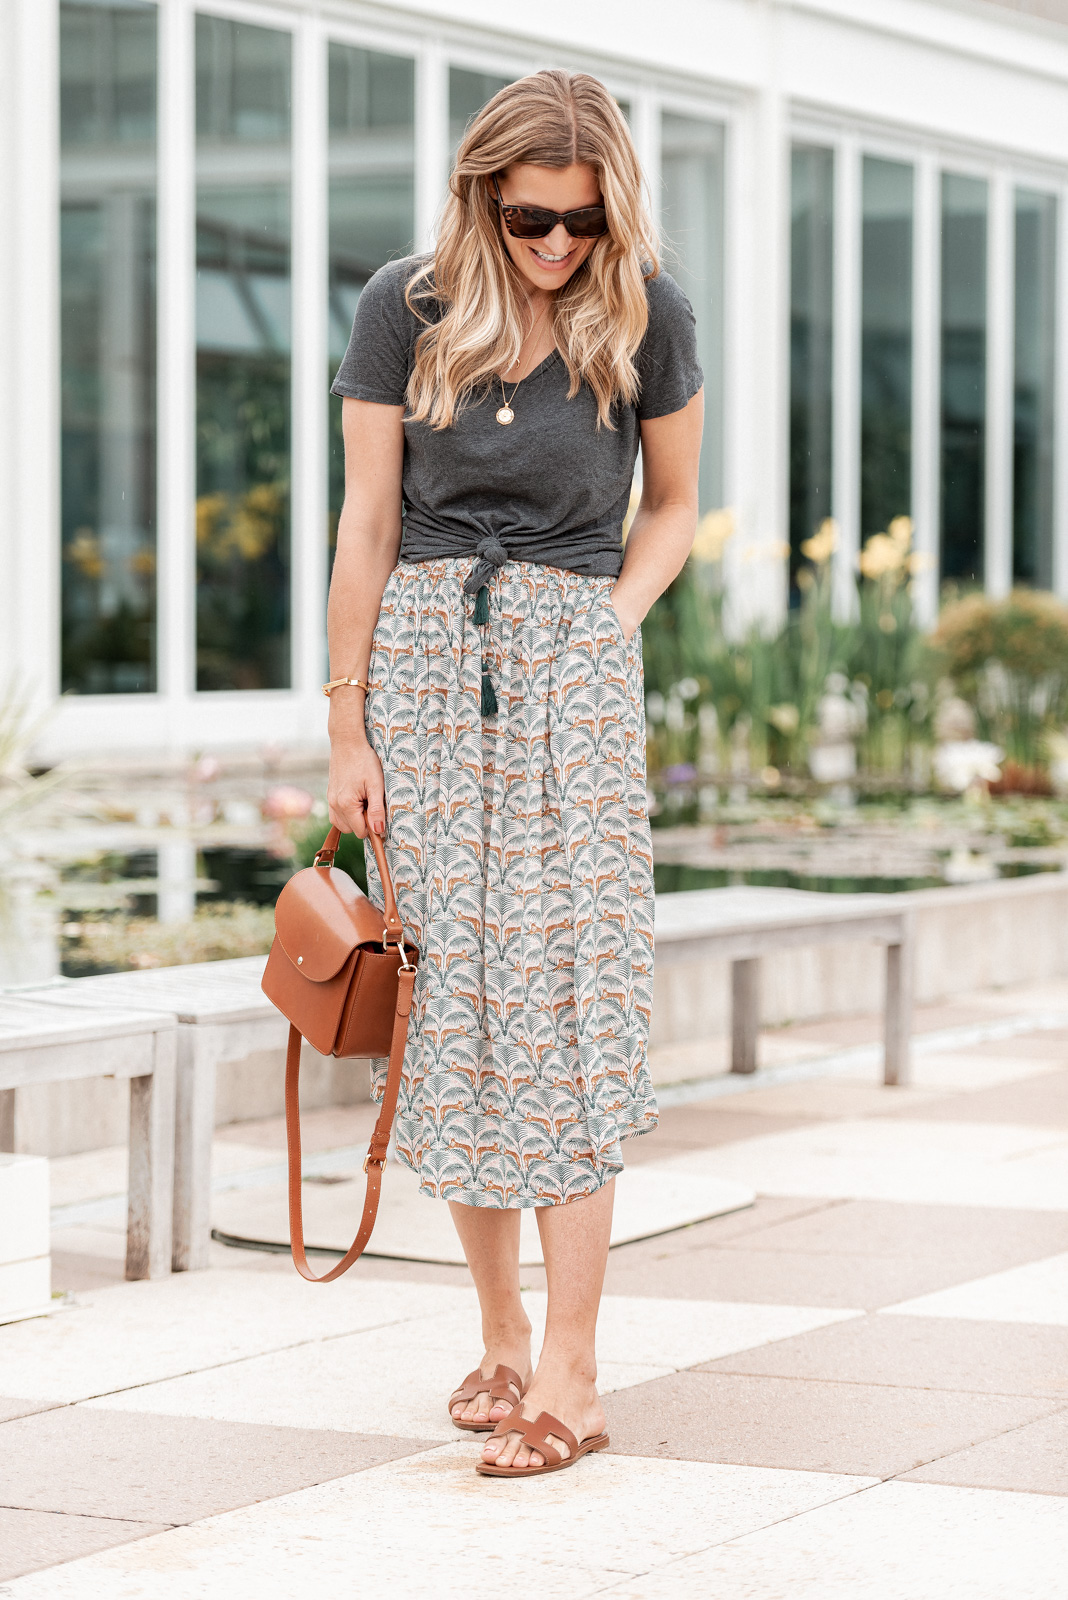 Laura Behnke The Life Actually Company What I Really Wore Minnesota FatFace Skirt